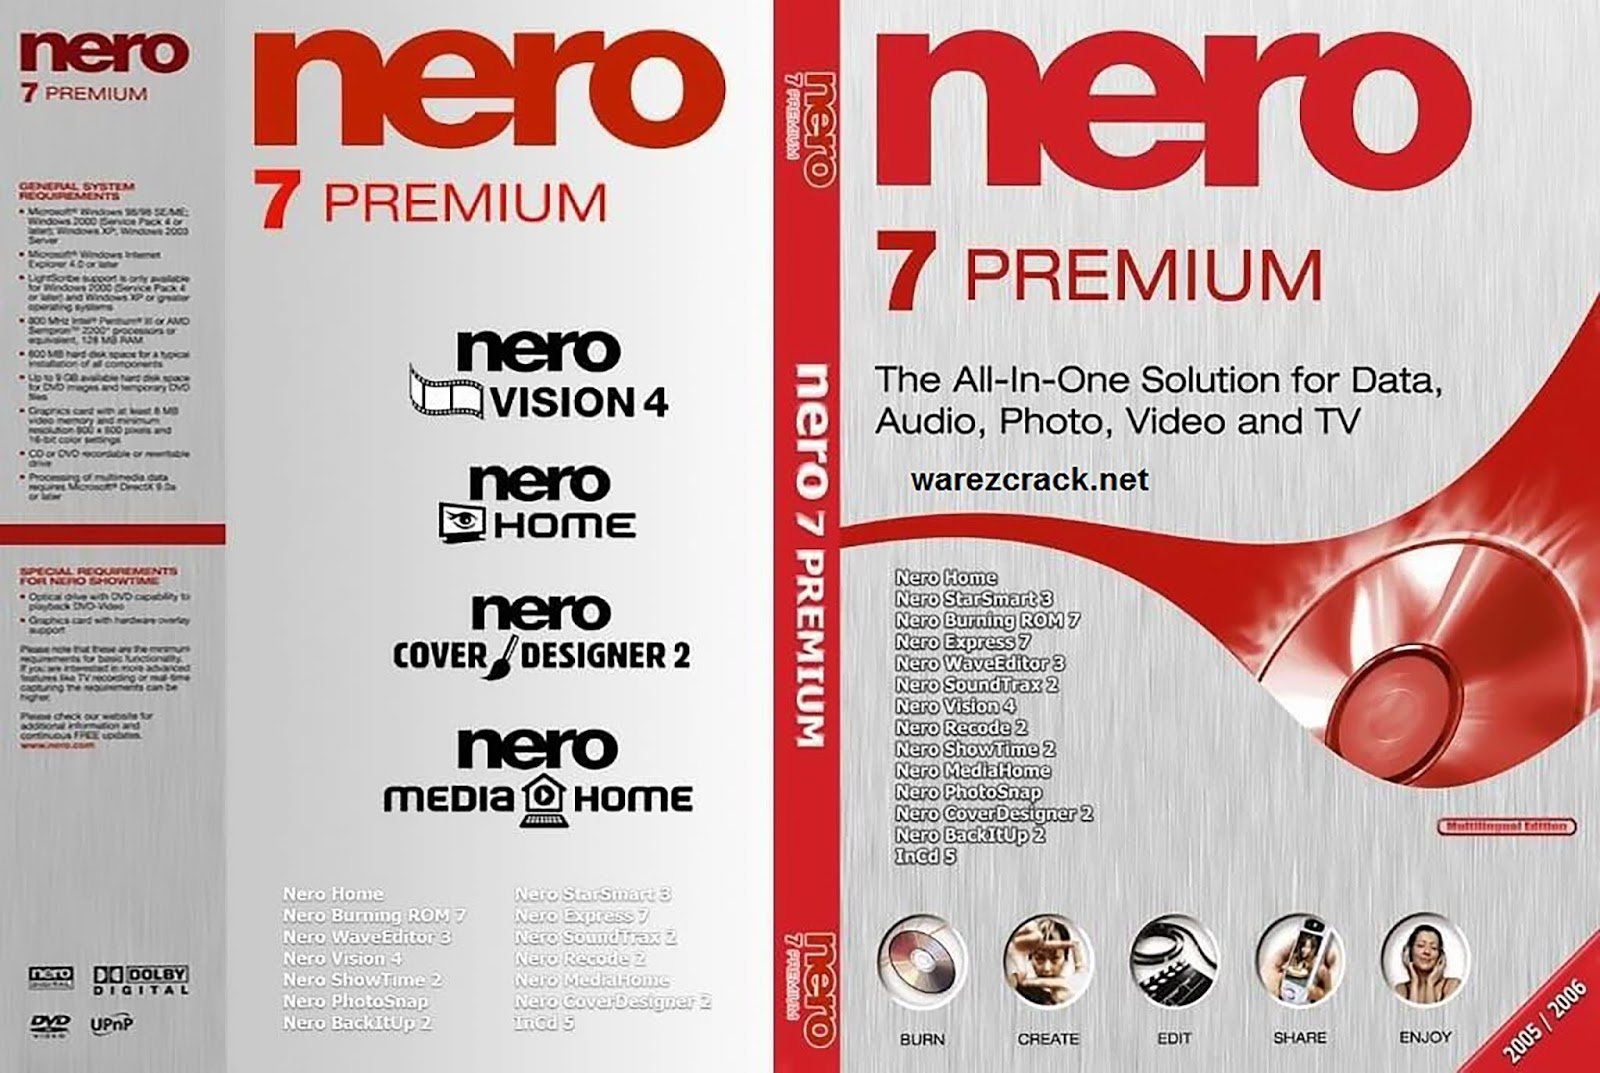 Nero vision express free download for windows 8